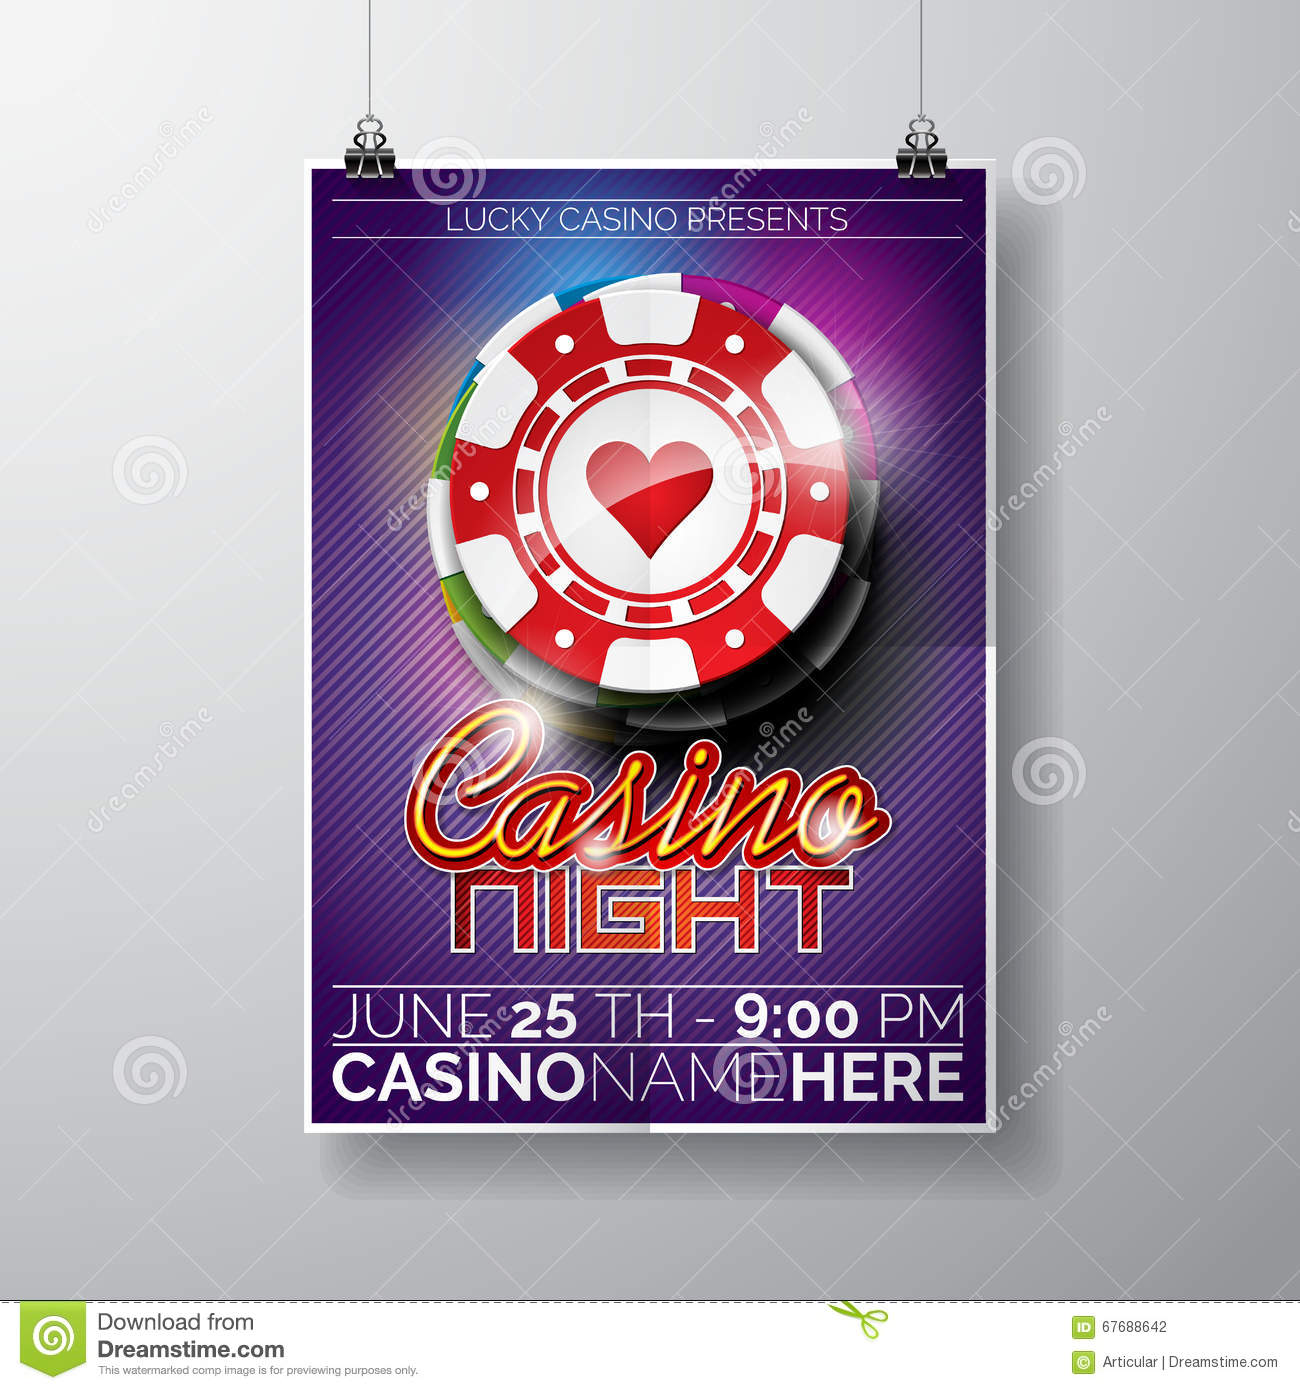 Vector Party Flyer design on a Casino theme with chips and typographyc text on violet background.